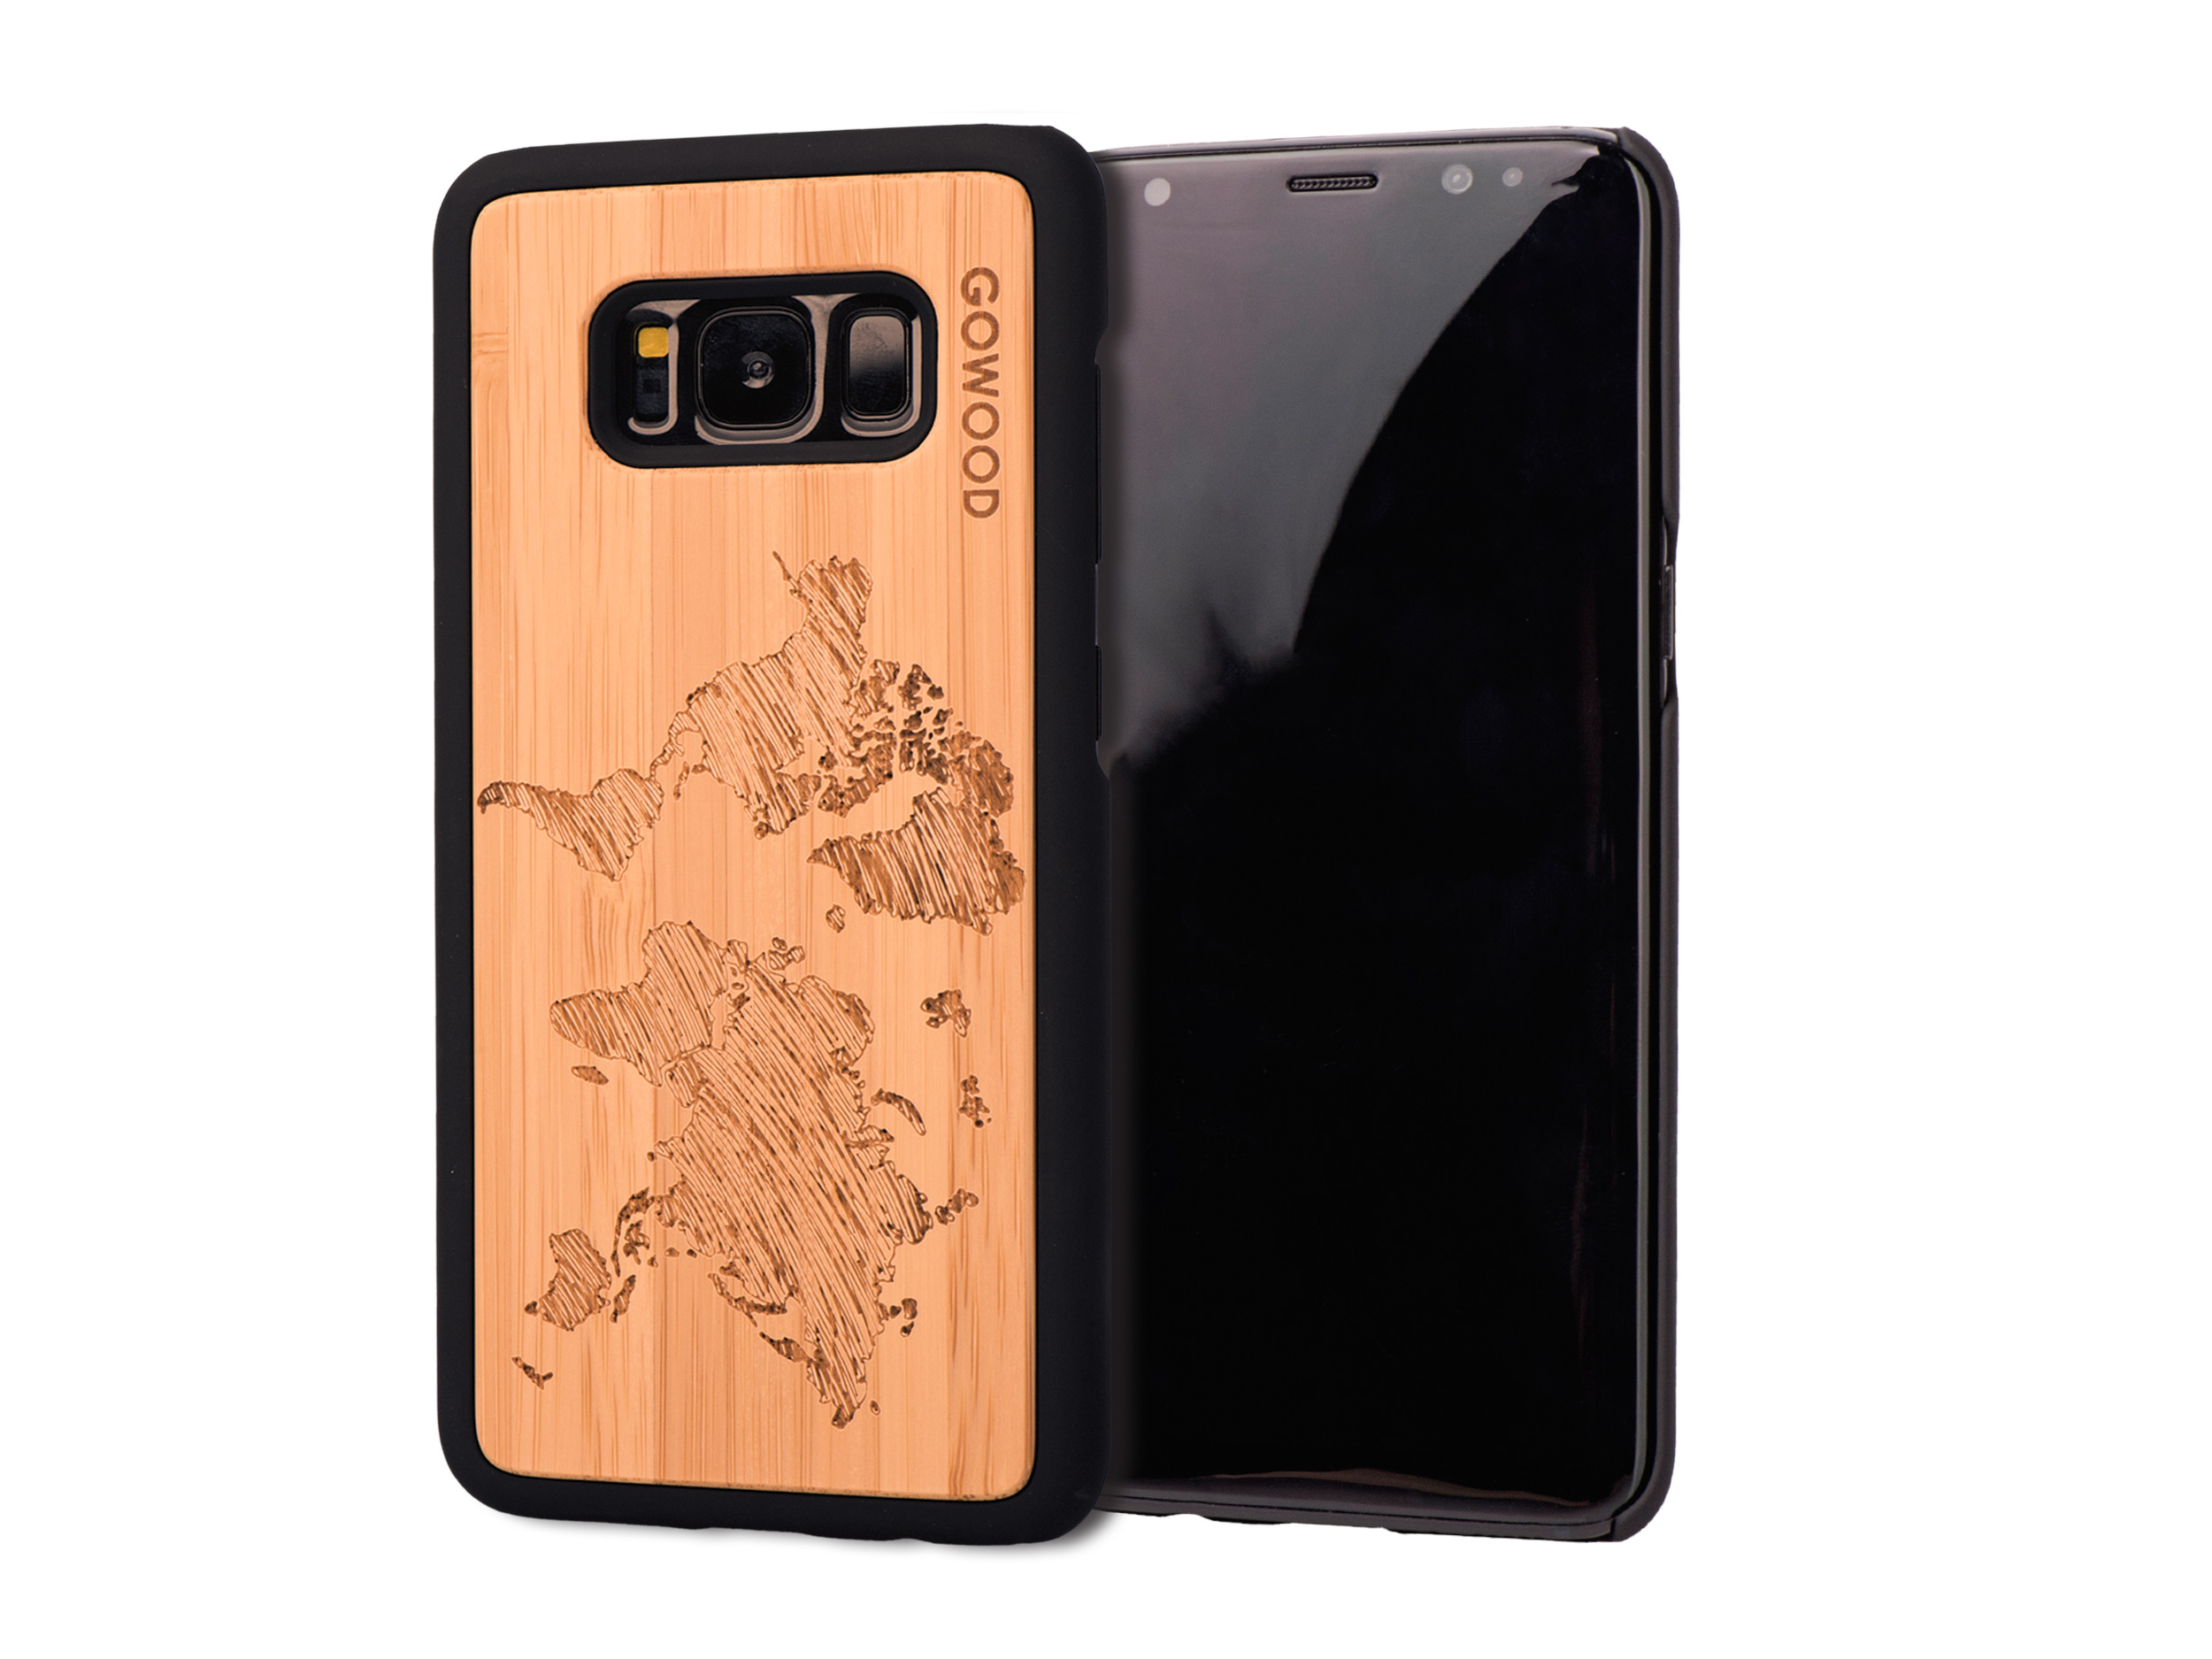 Samsung Galaxy S8 wood case world map